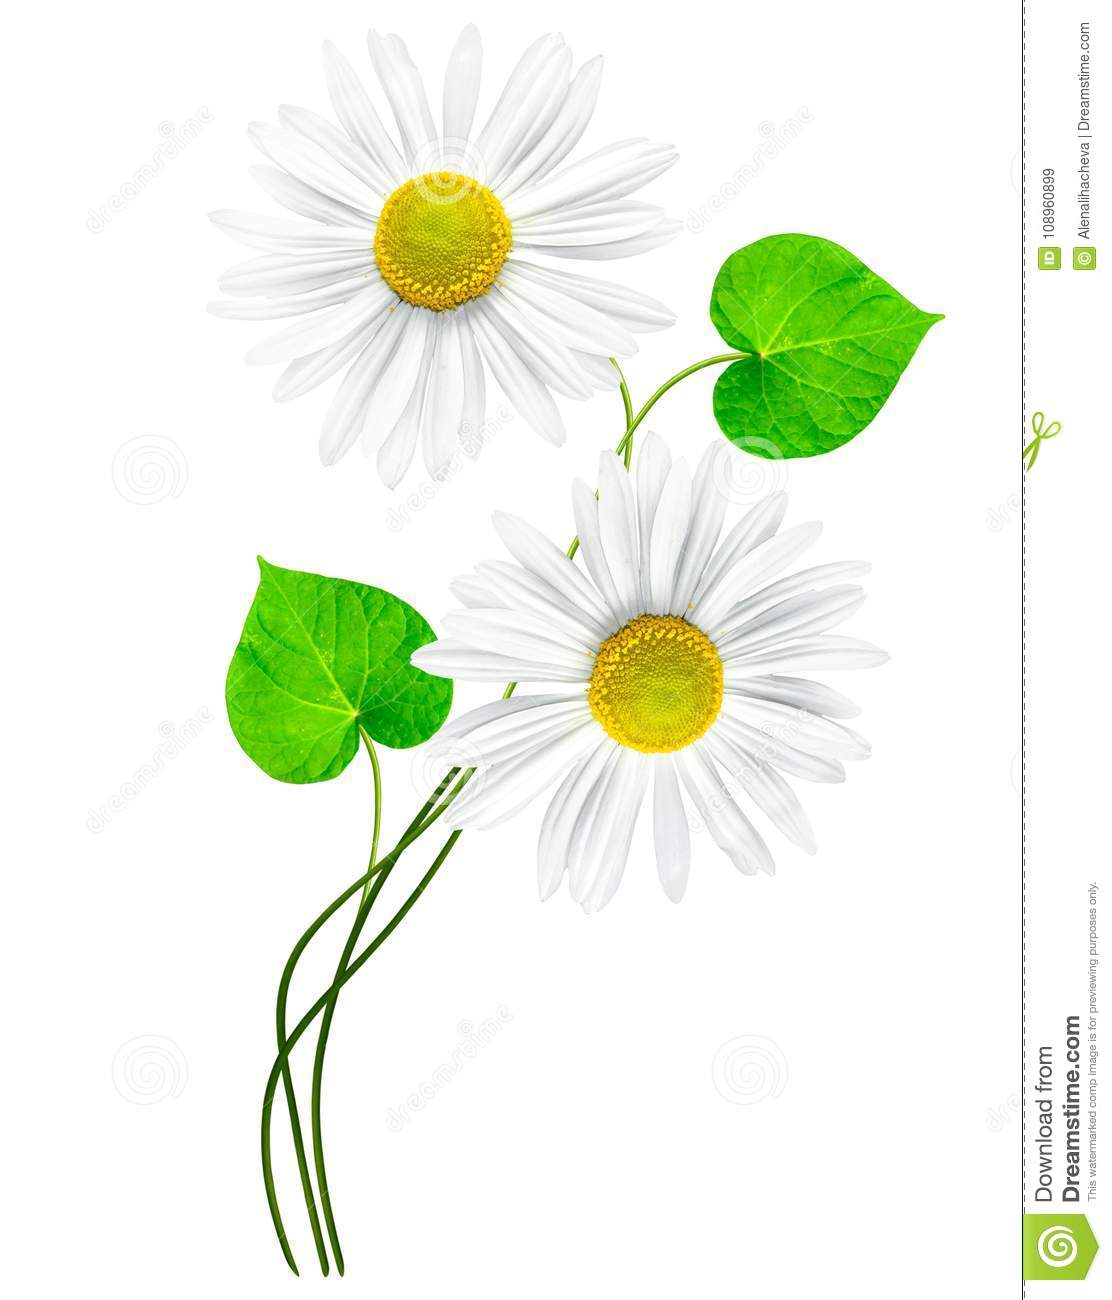 Daisies Summer Flower Stock Image Image Of Colors 108960899